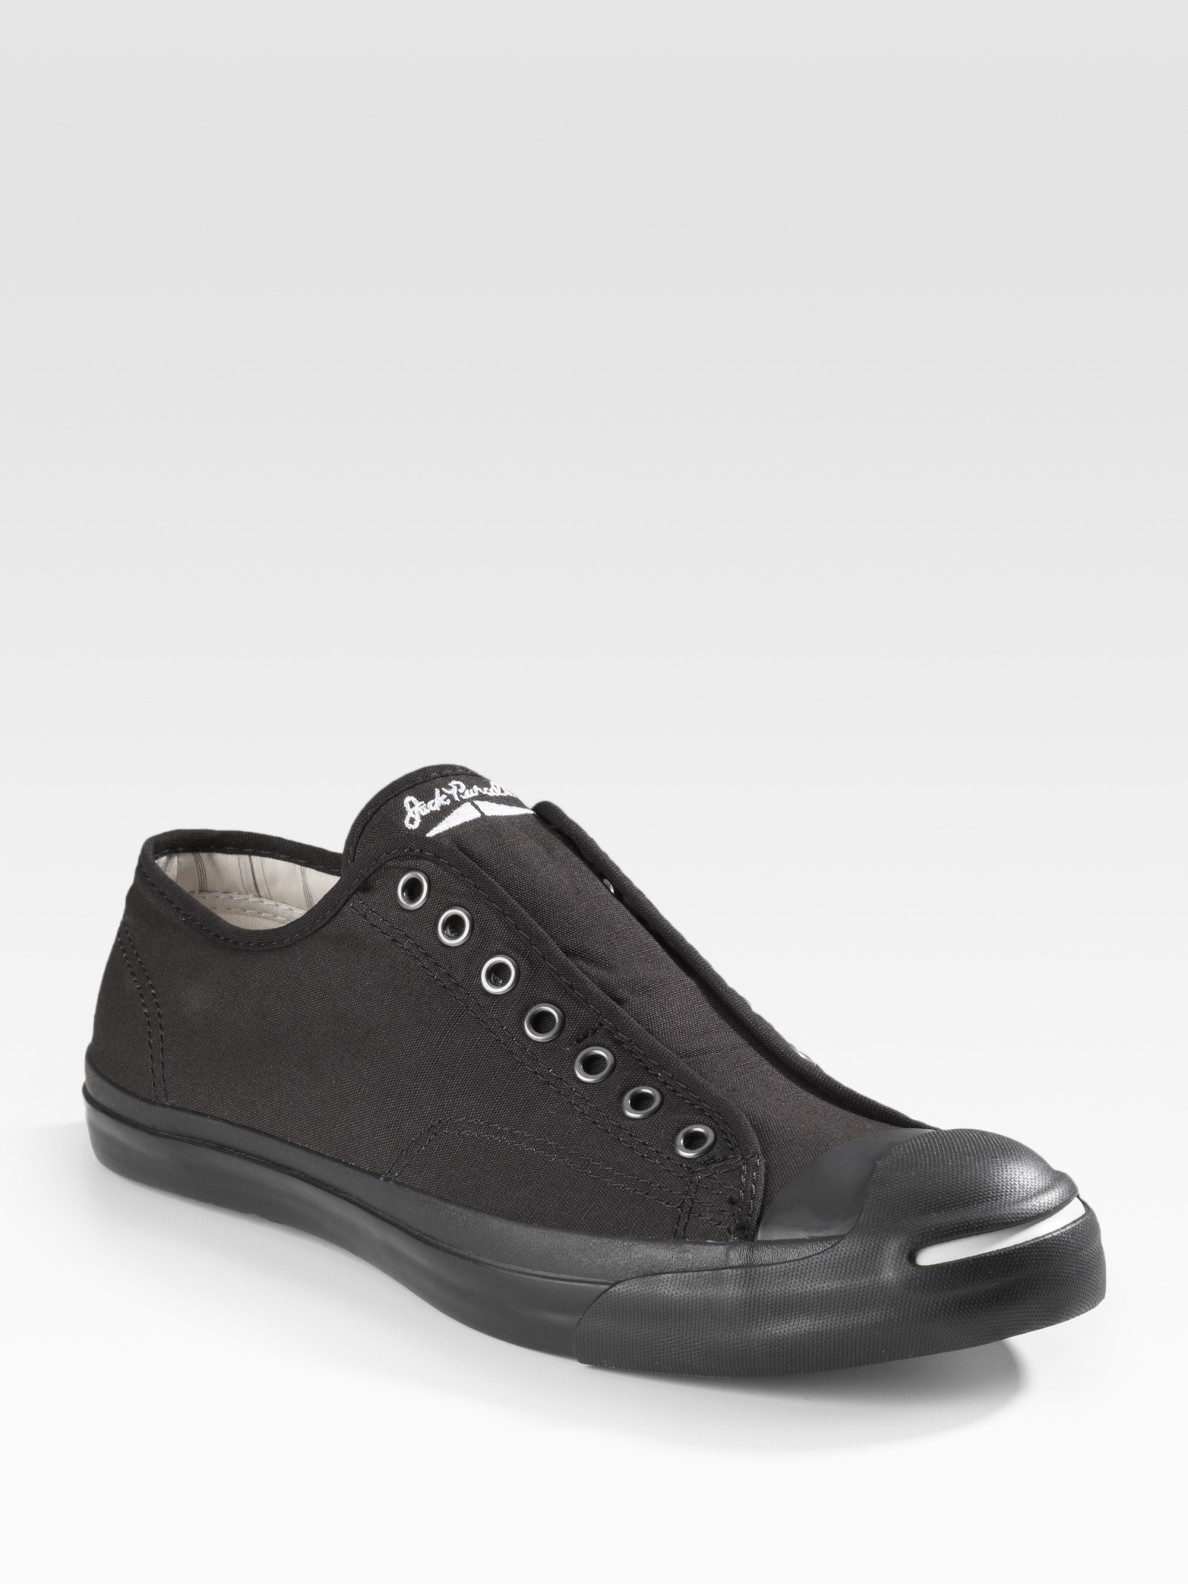 6aeb5e132080a4 Lyst - Converse Jack Purcell Slip On in Black for Men